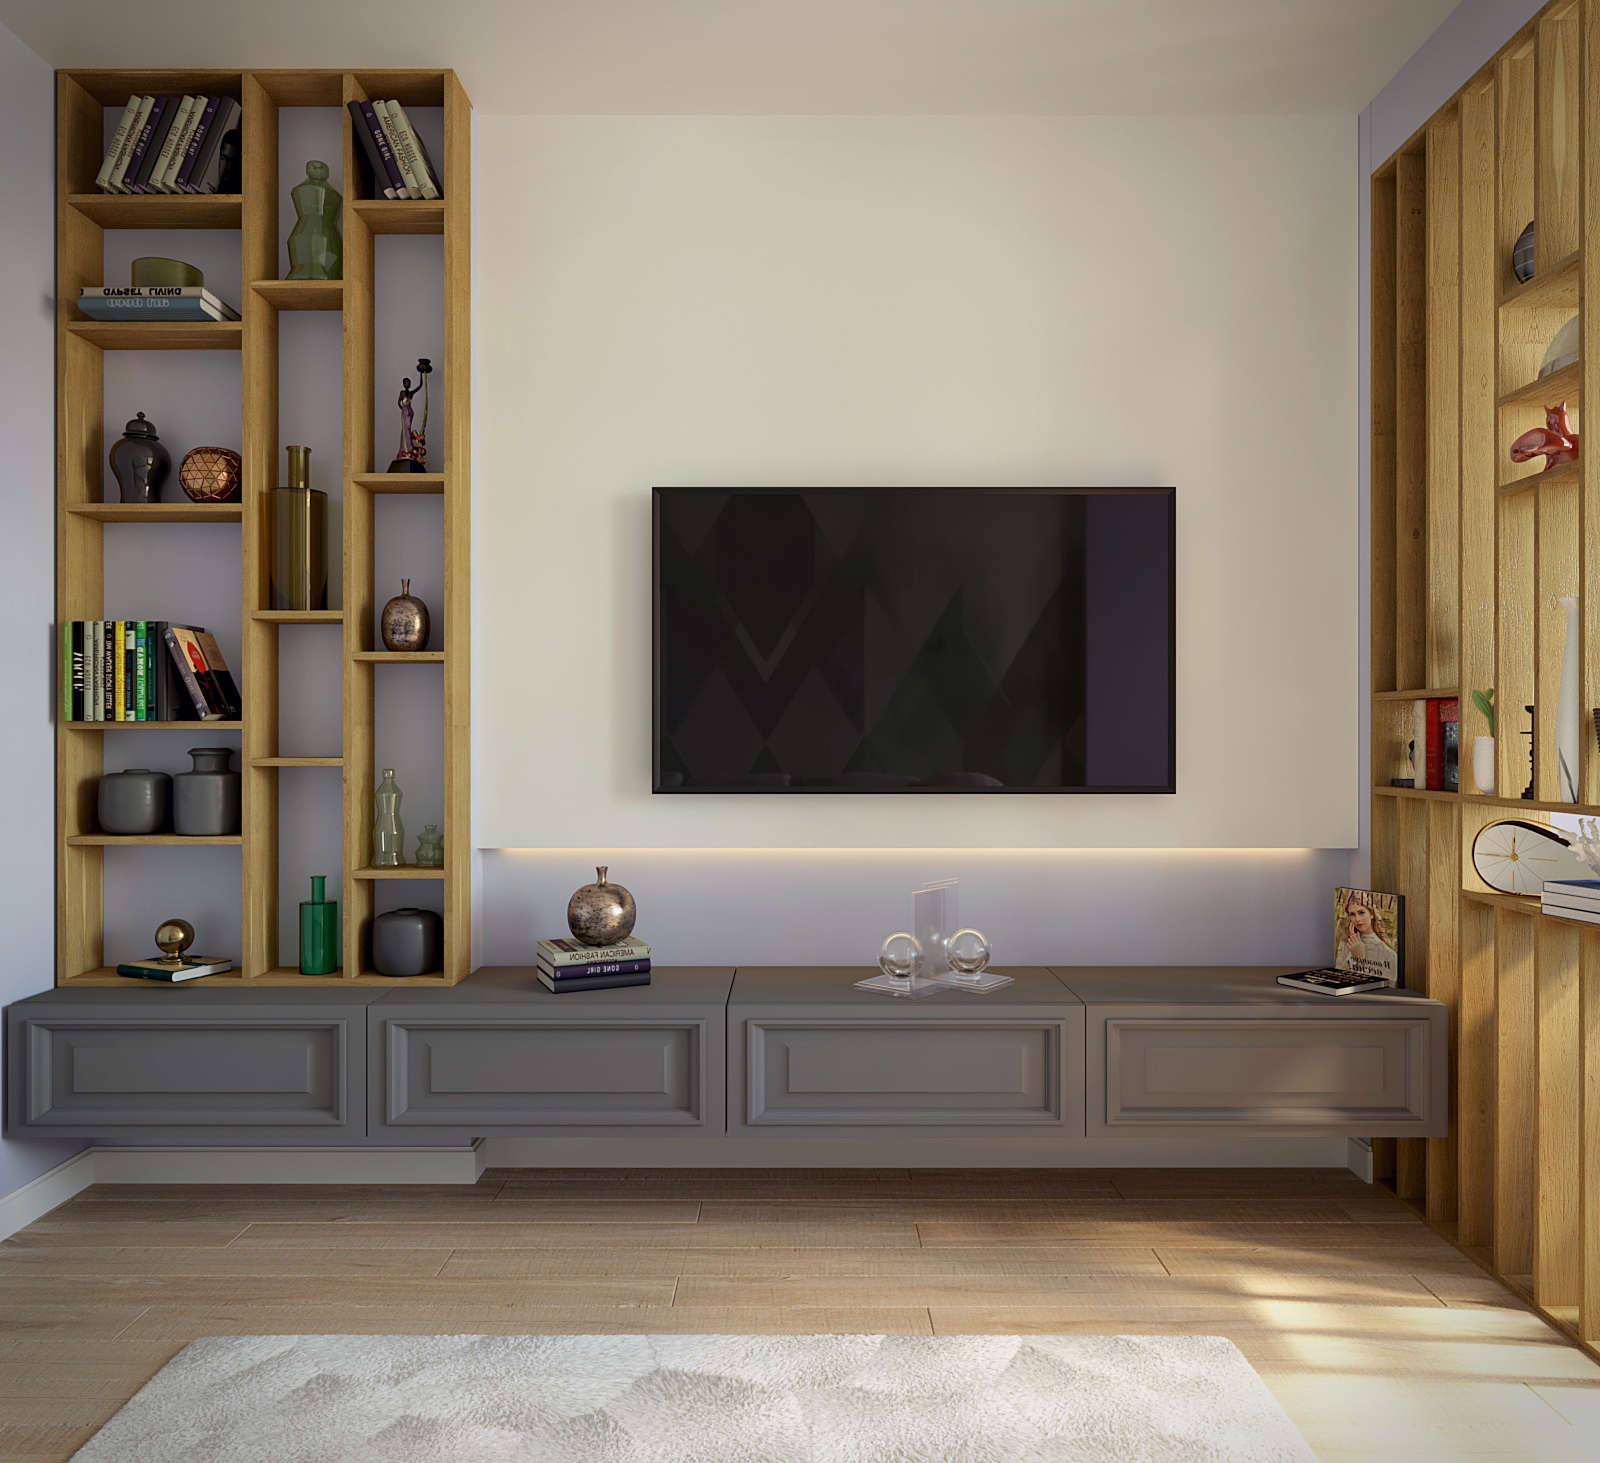 3D-Interior Visualization in 3d max corona render image